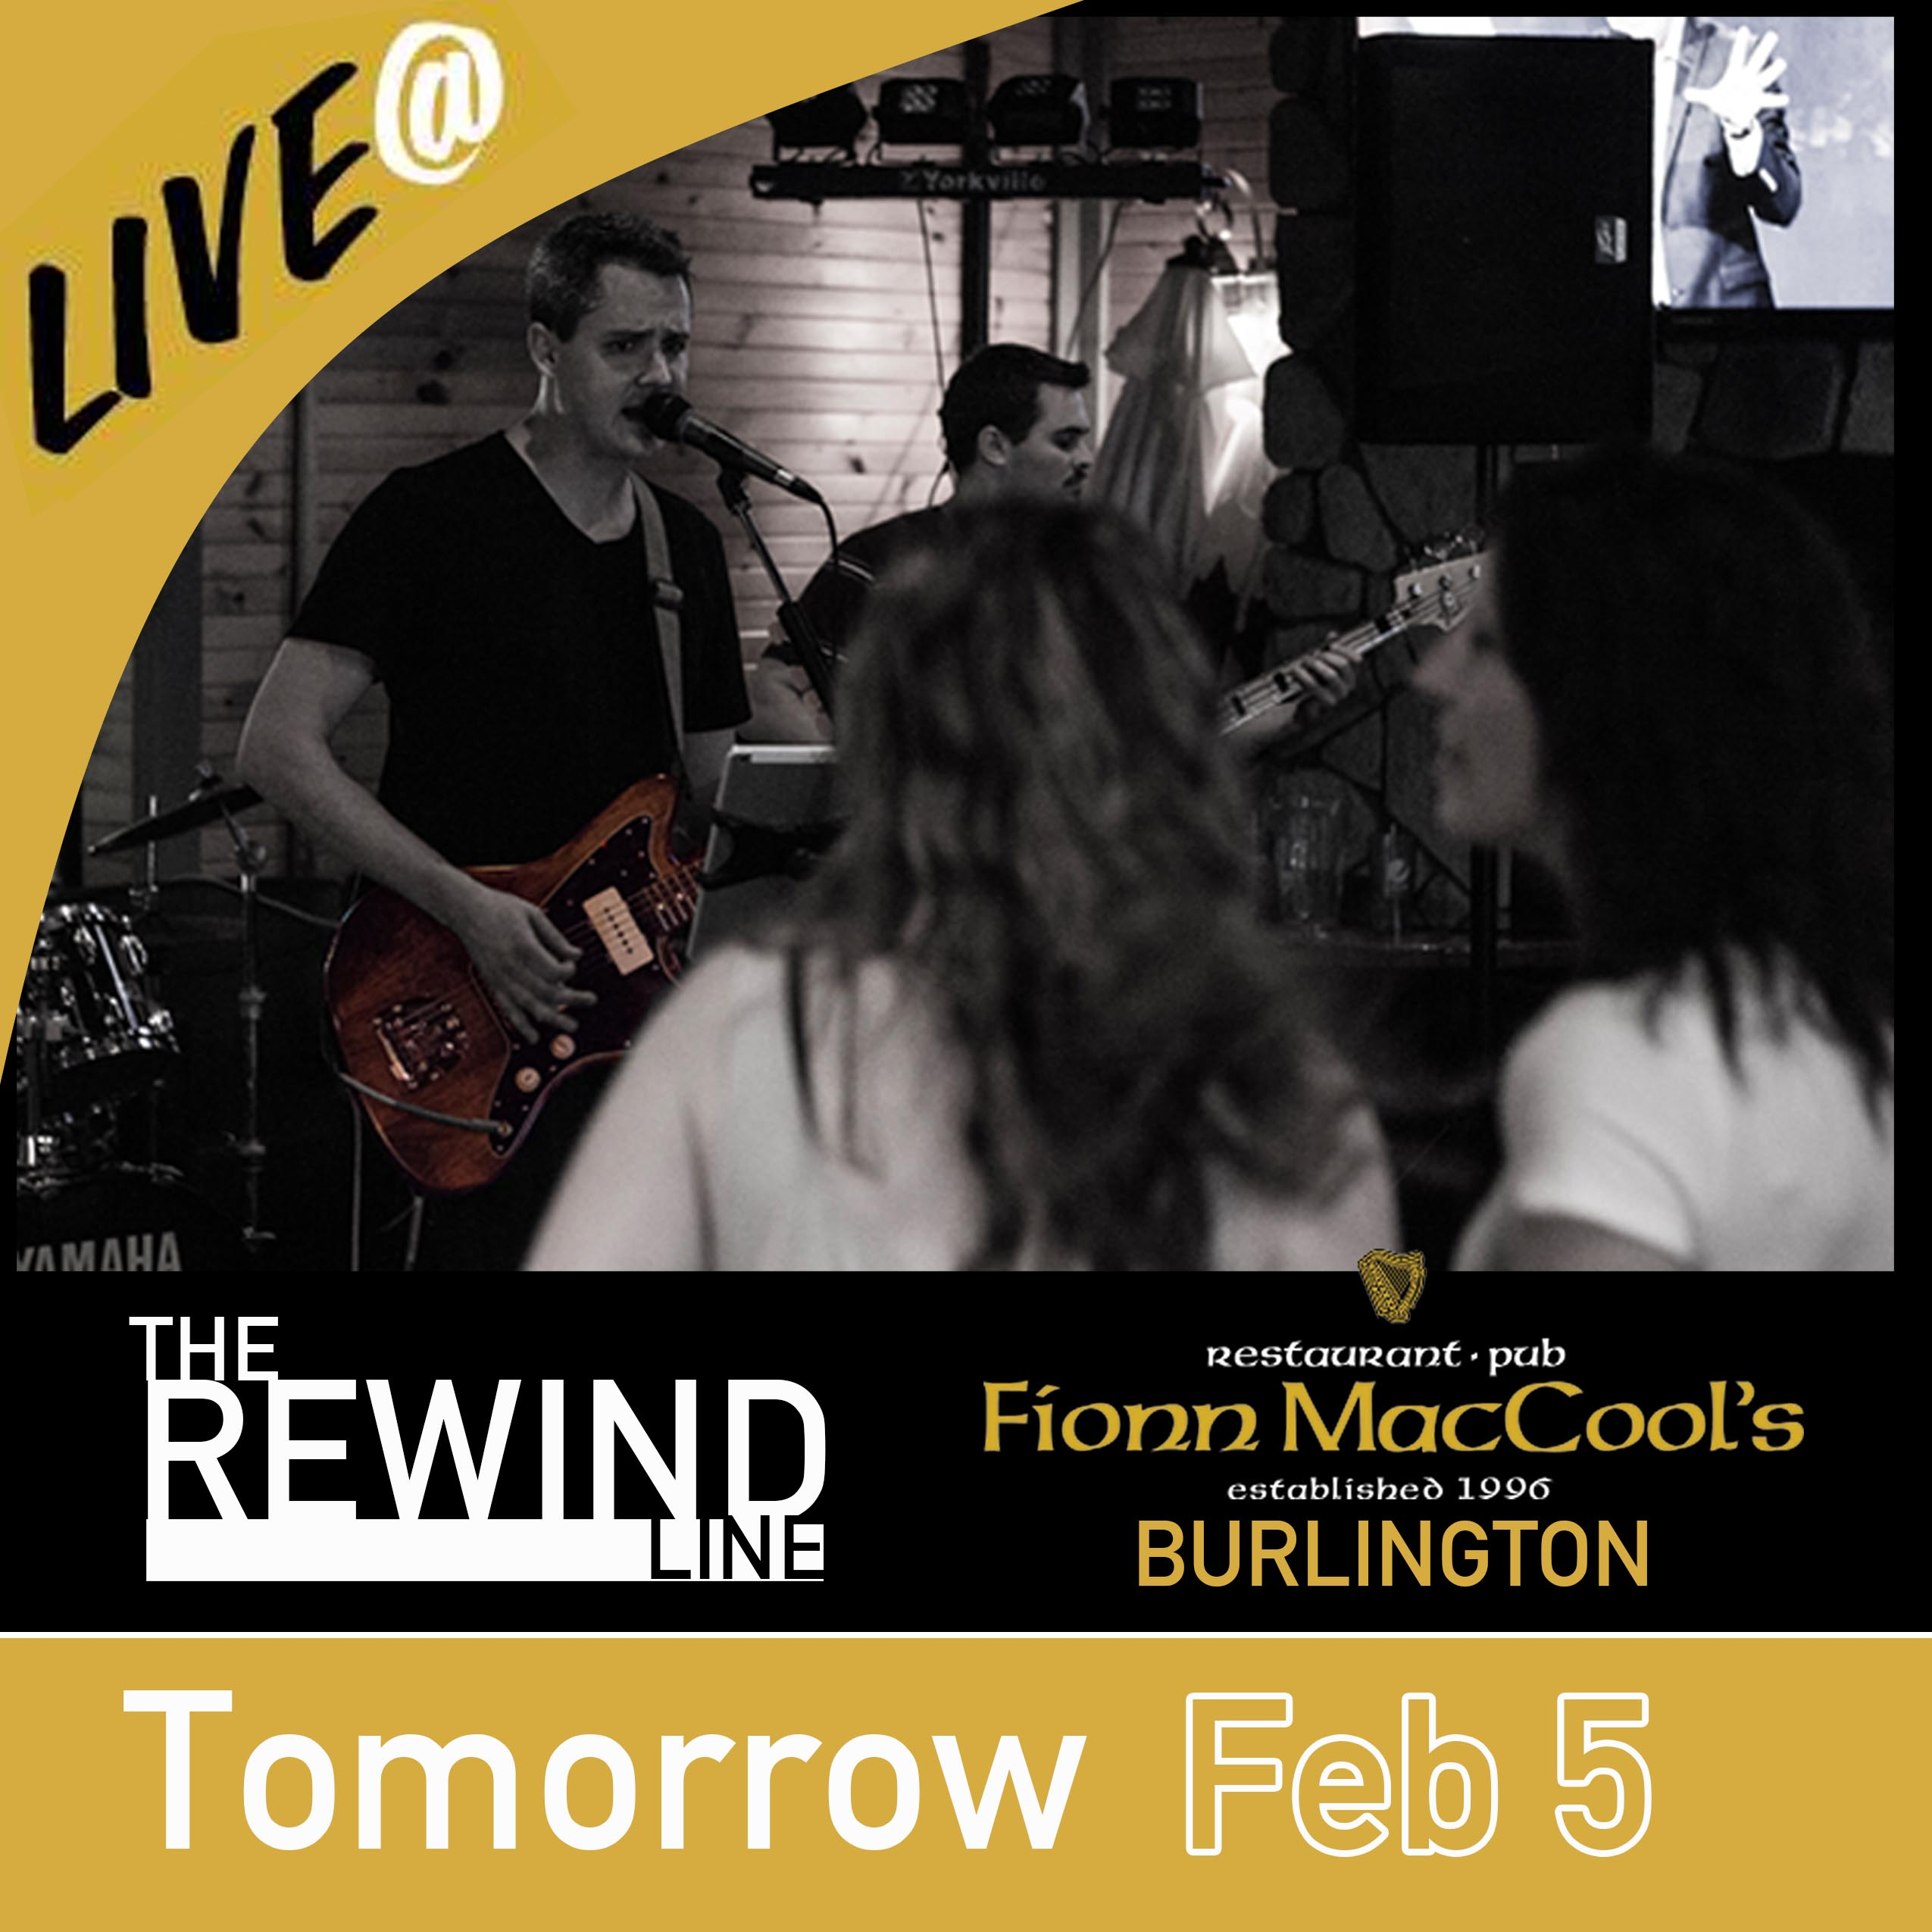 Feb 5, 201 Fionn MacCools Burlington